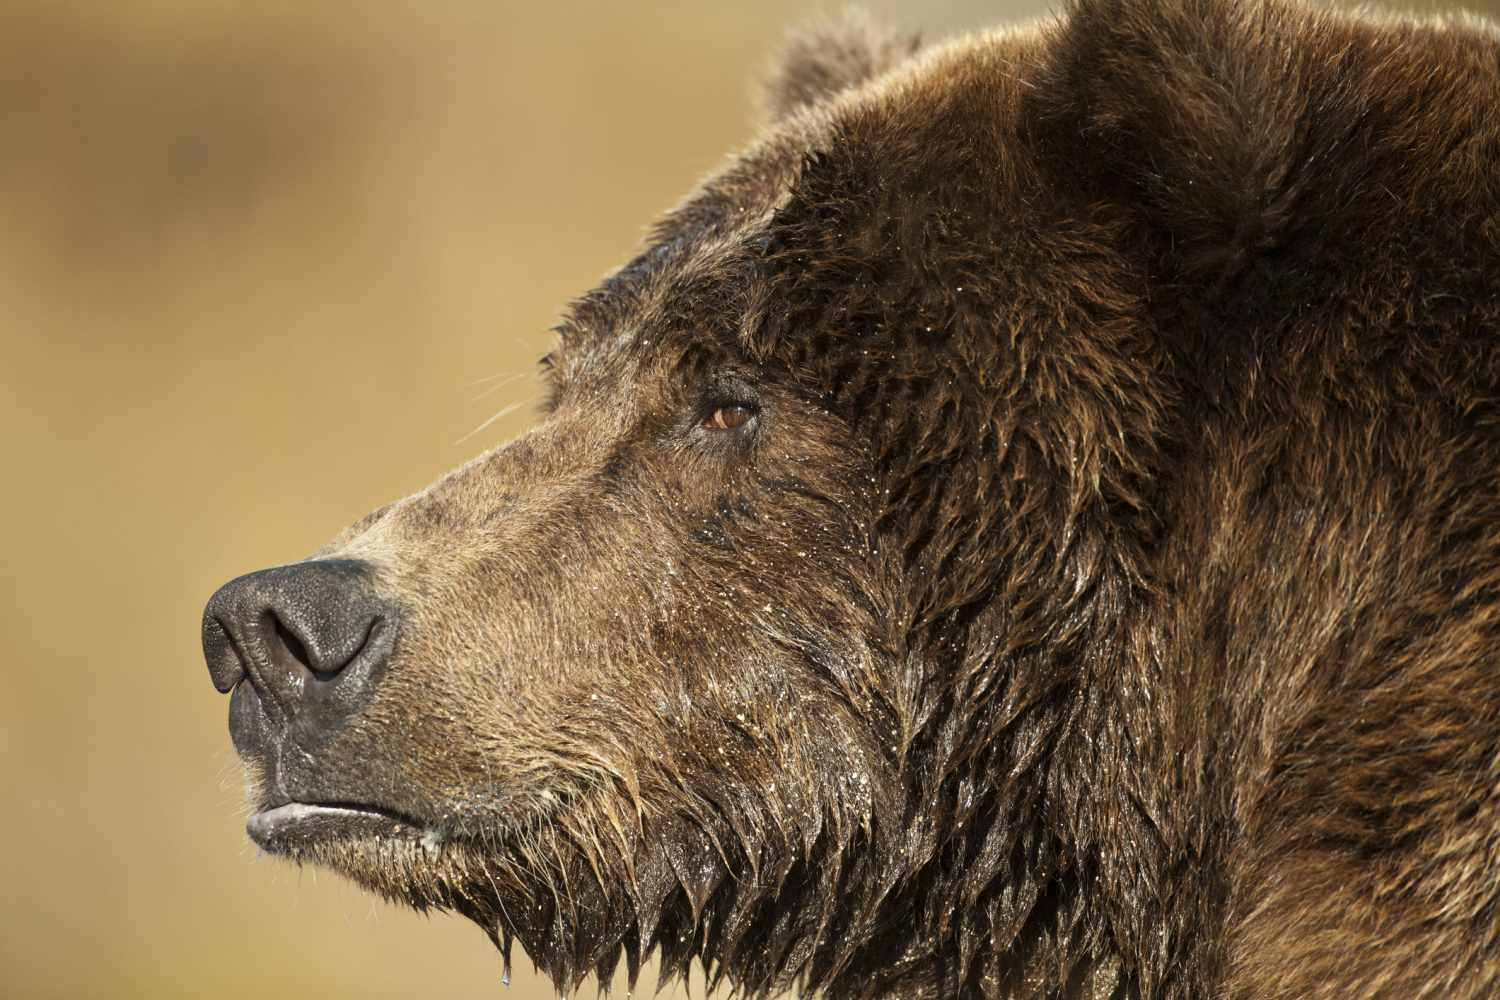 Adult Male Grizzly Bear (Ursus arctos)